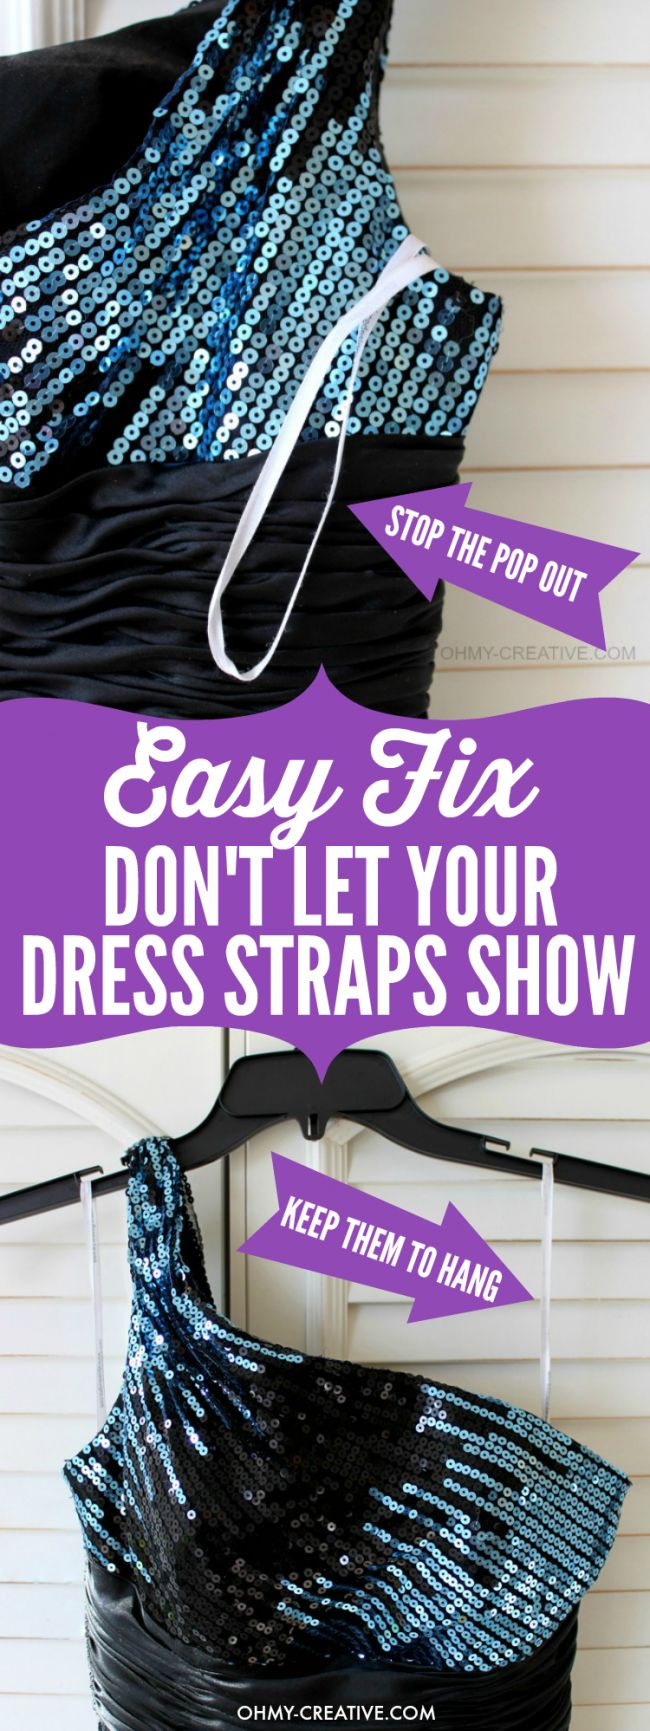 Don't be that girl! All dressed up only to have the strap hanging out the back under your arm - ugh! An easy Clothing Strap Hack, without cutting them off, so they can be used to hang the garment later! | OHMY-CREATIVE.COM  |  clothing hanger strap | formalwear | Prom | Wedding